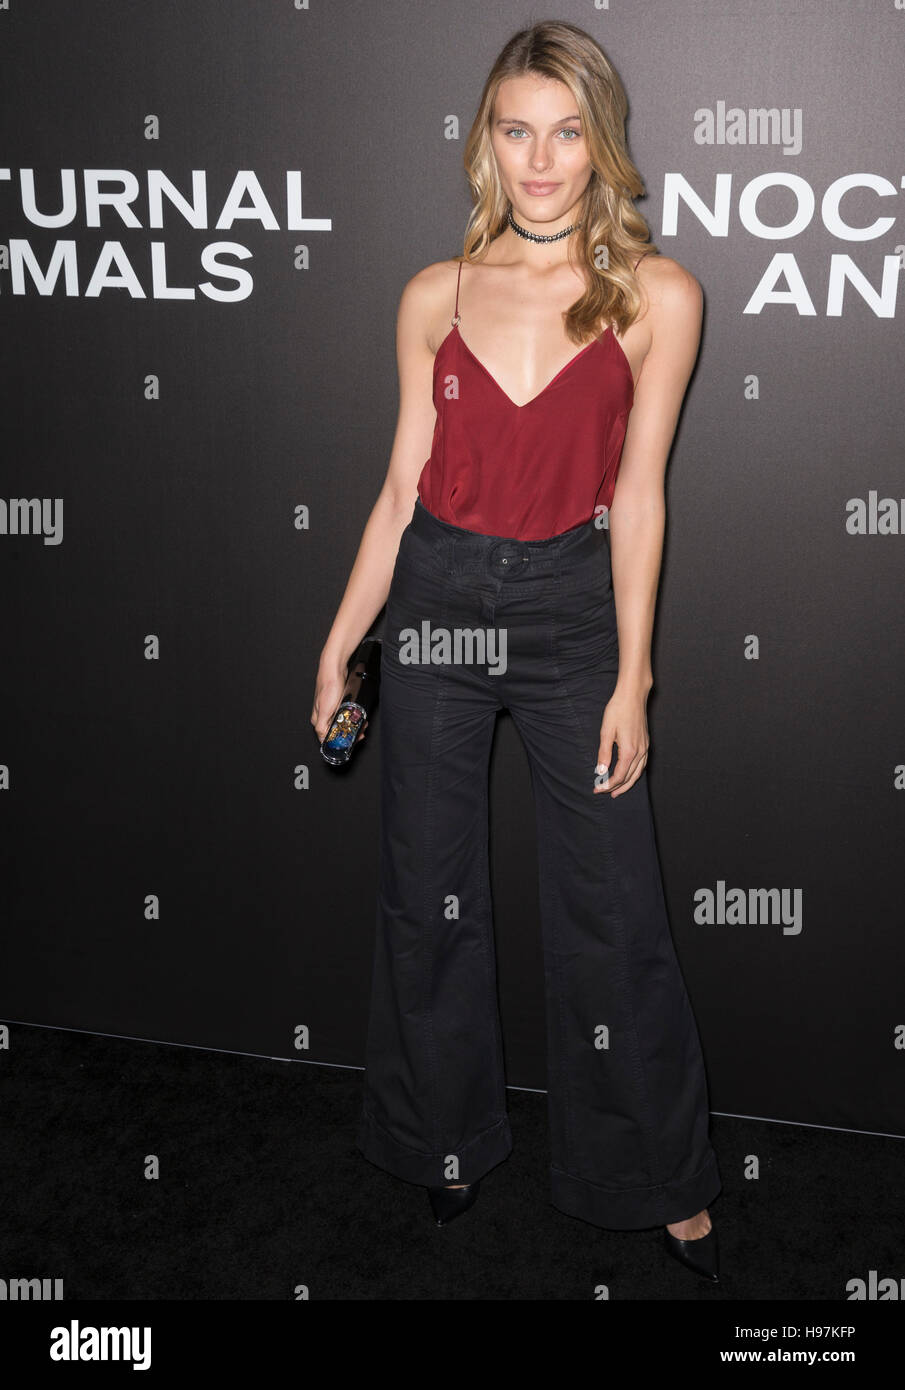 New York City, USA - November 17, 2016: Model Madison Headrick attends the 'Nocturnal Animals' New York - Stock Image